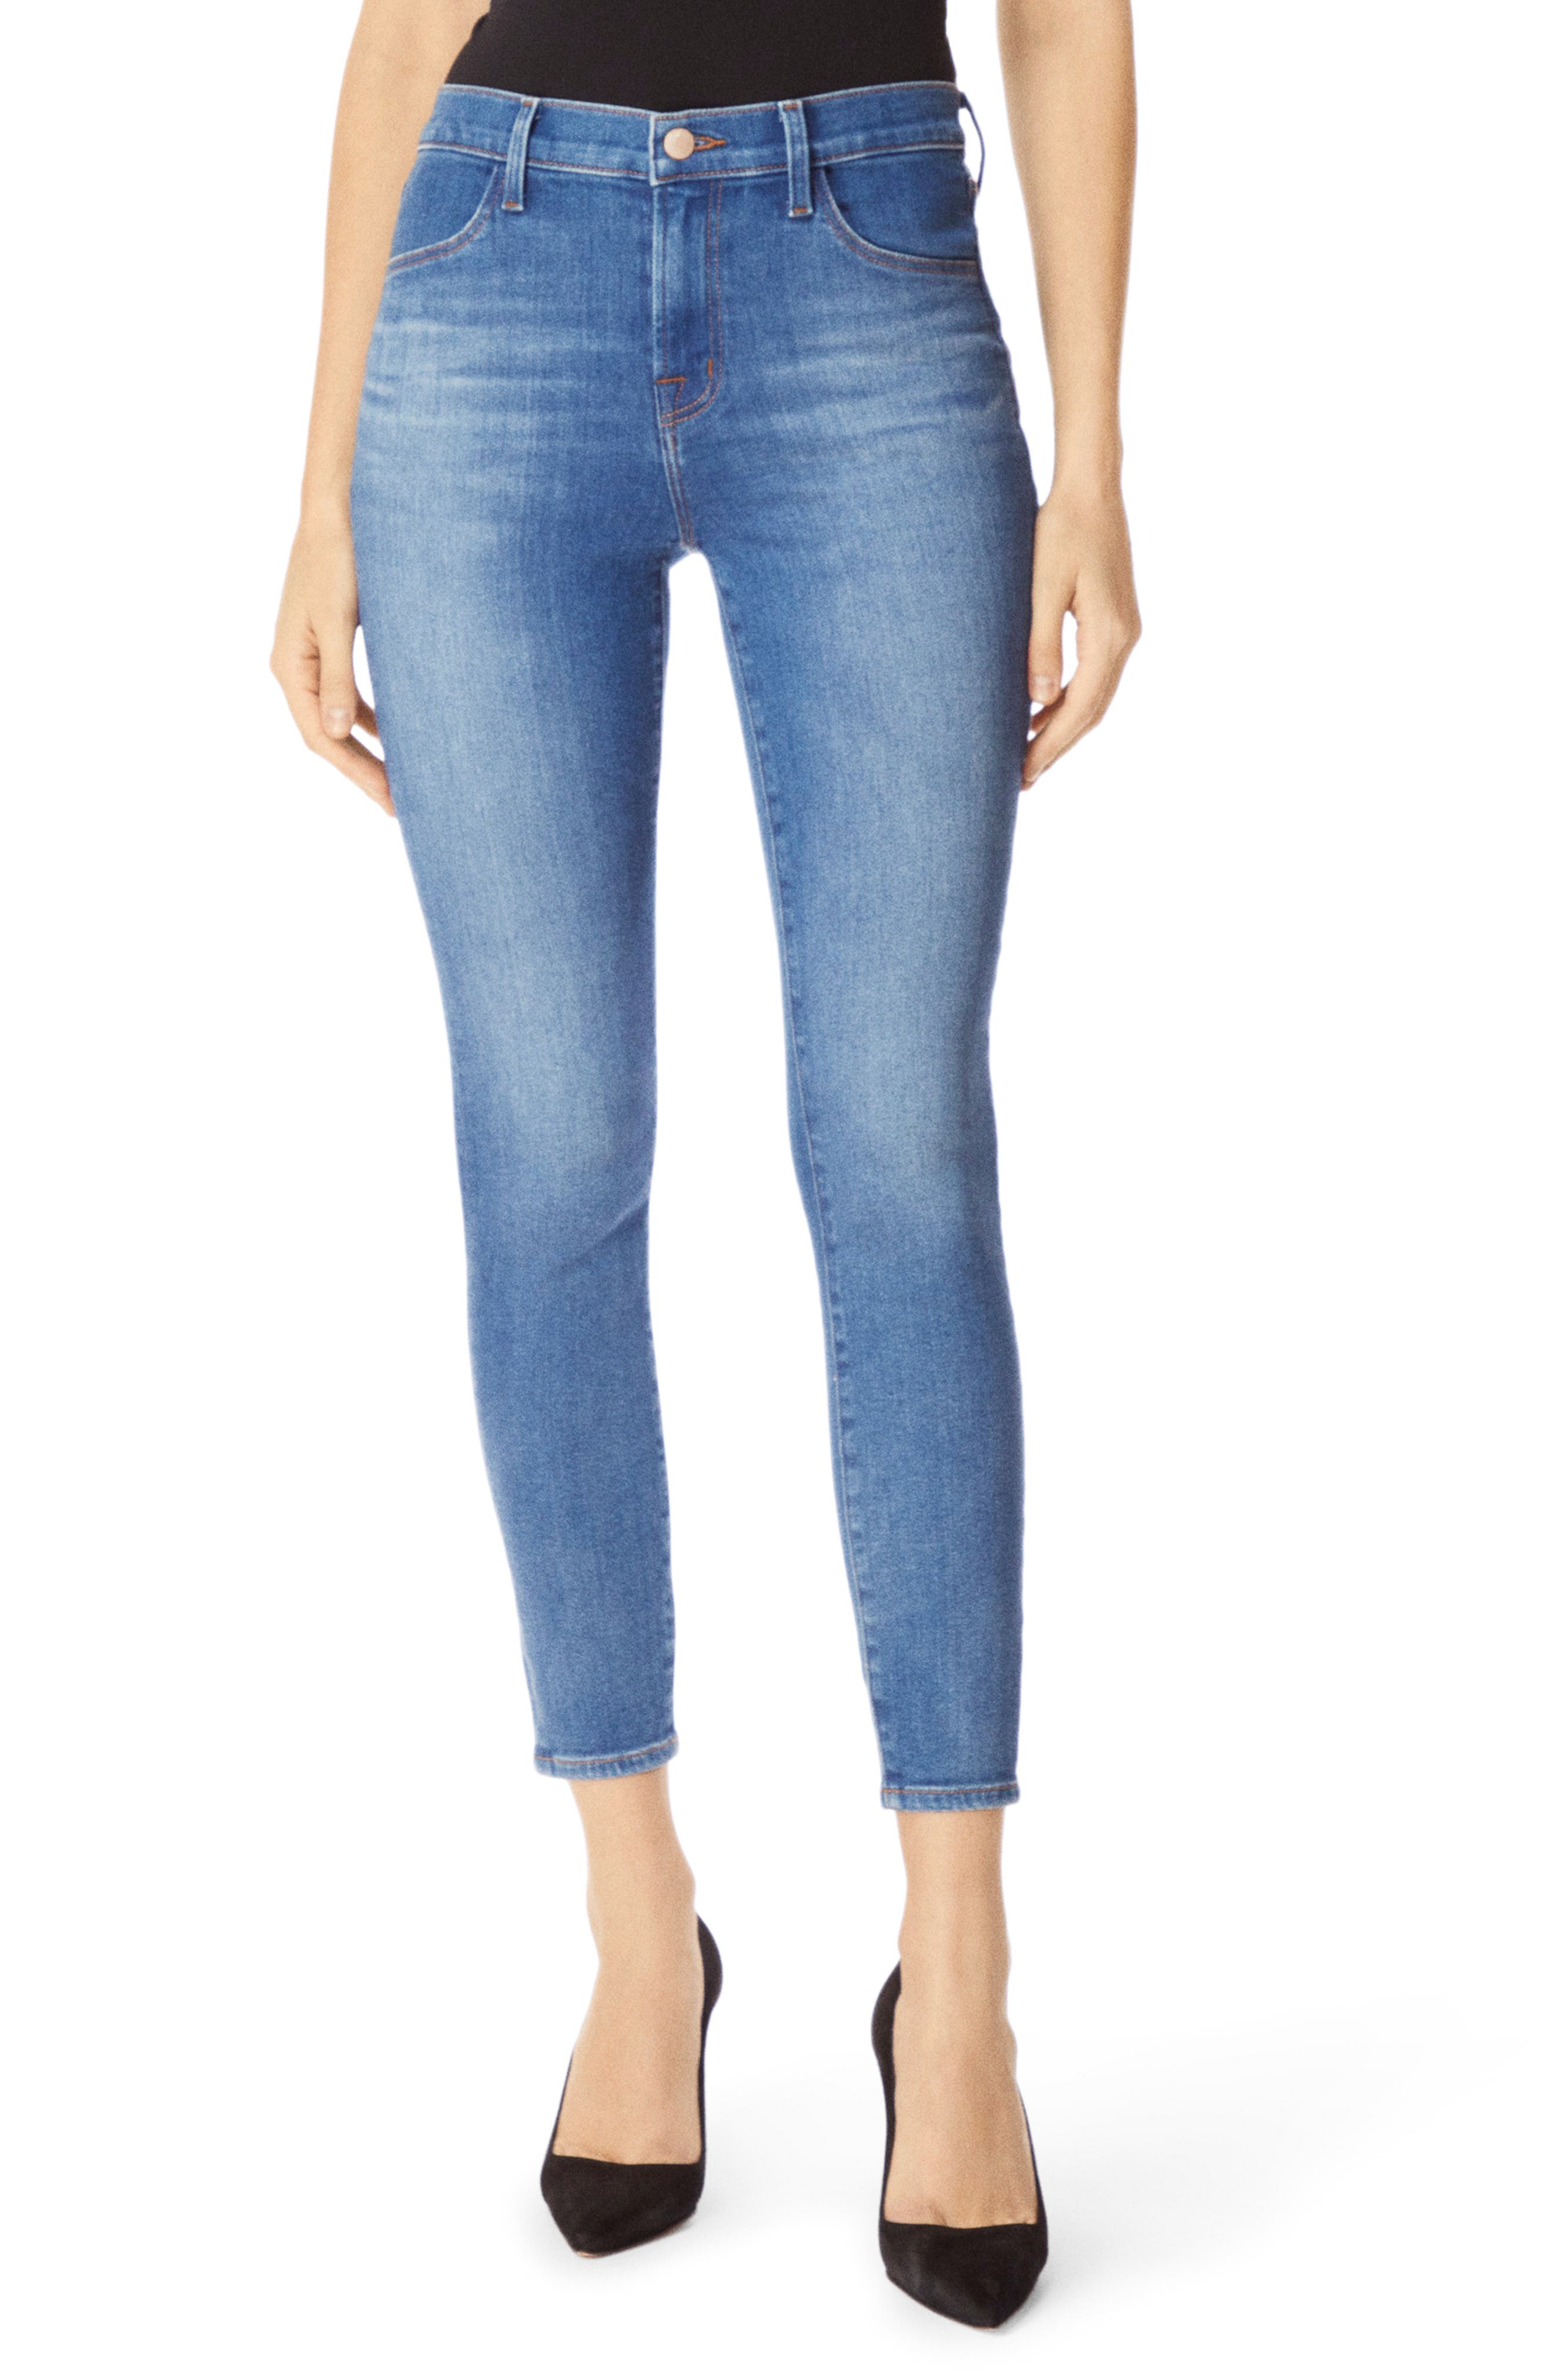 Alana High Waist Crop Skinny Jeans,                             Main thumbnail 1, color,                             RADIATE